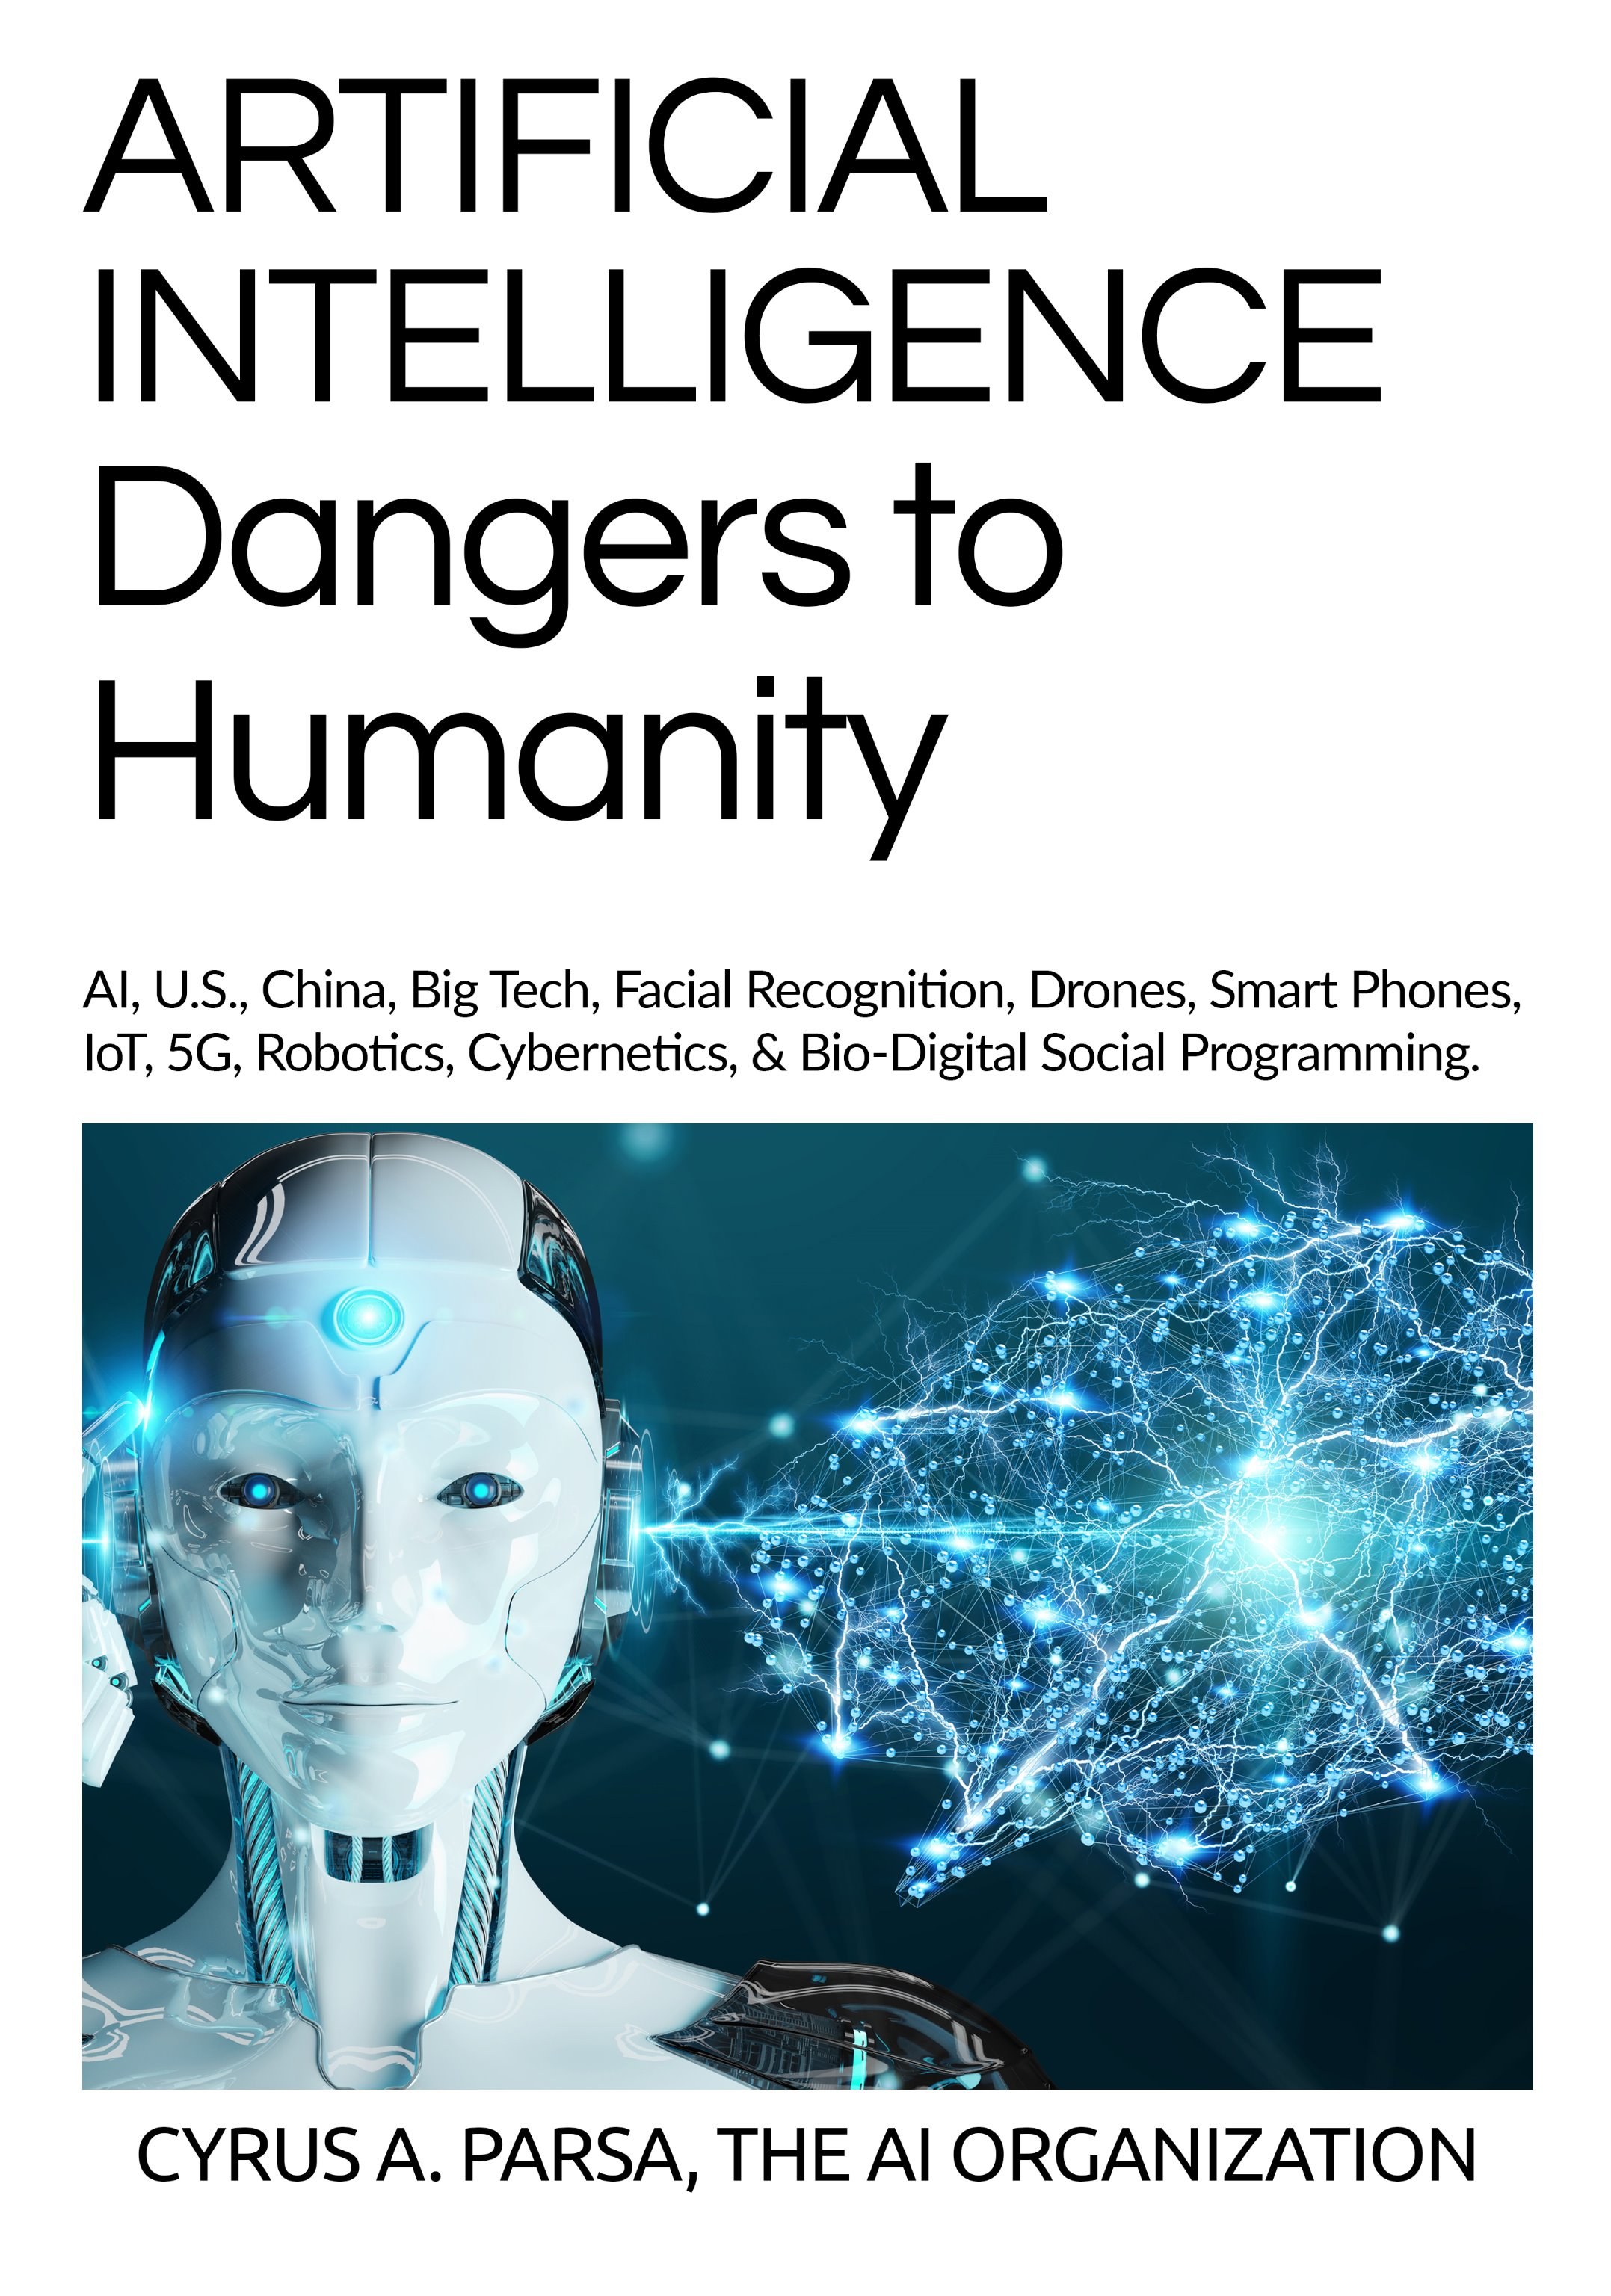 ARTIFICIAL INTELLIGENCE DANGERS TO HUMANITY - Via Quite Frankly